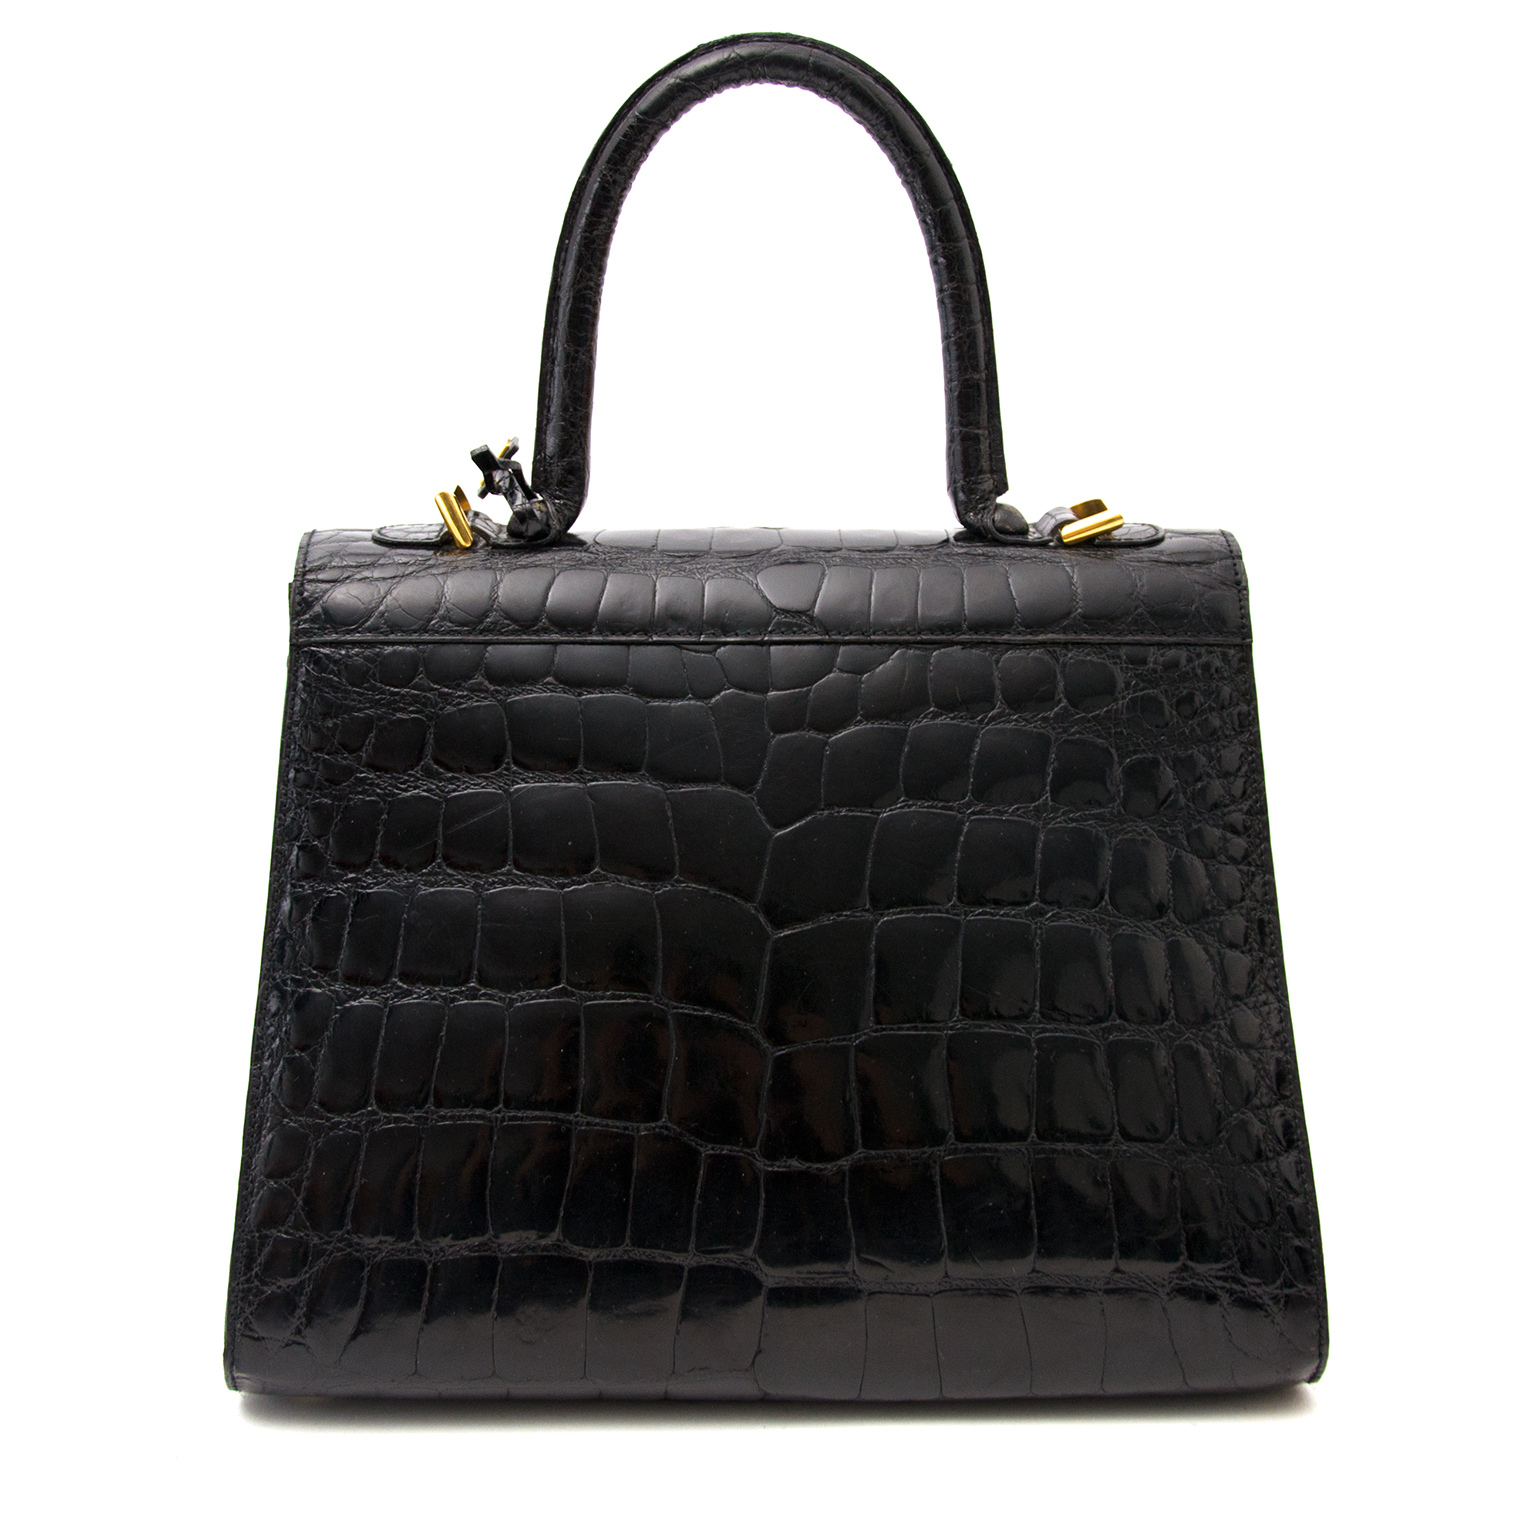 3045eacf4859 ... Buy and sell your preloved designer bags for the best rates online at Labellov  luxury